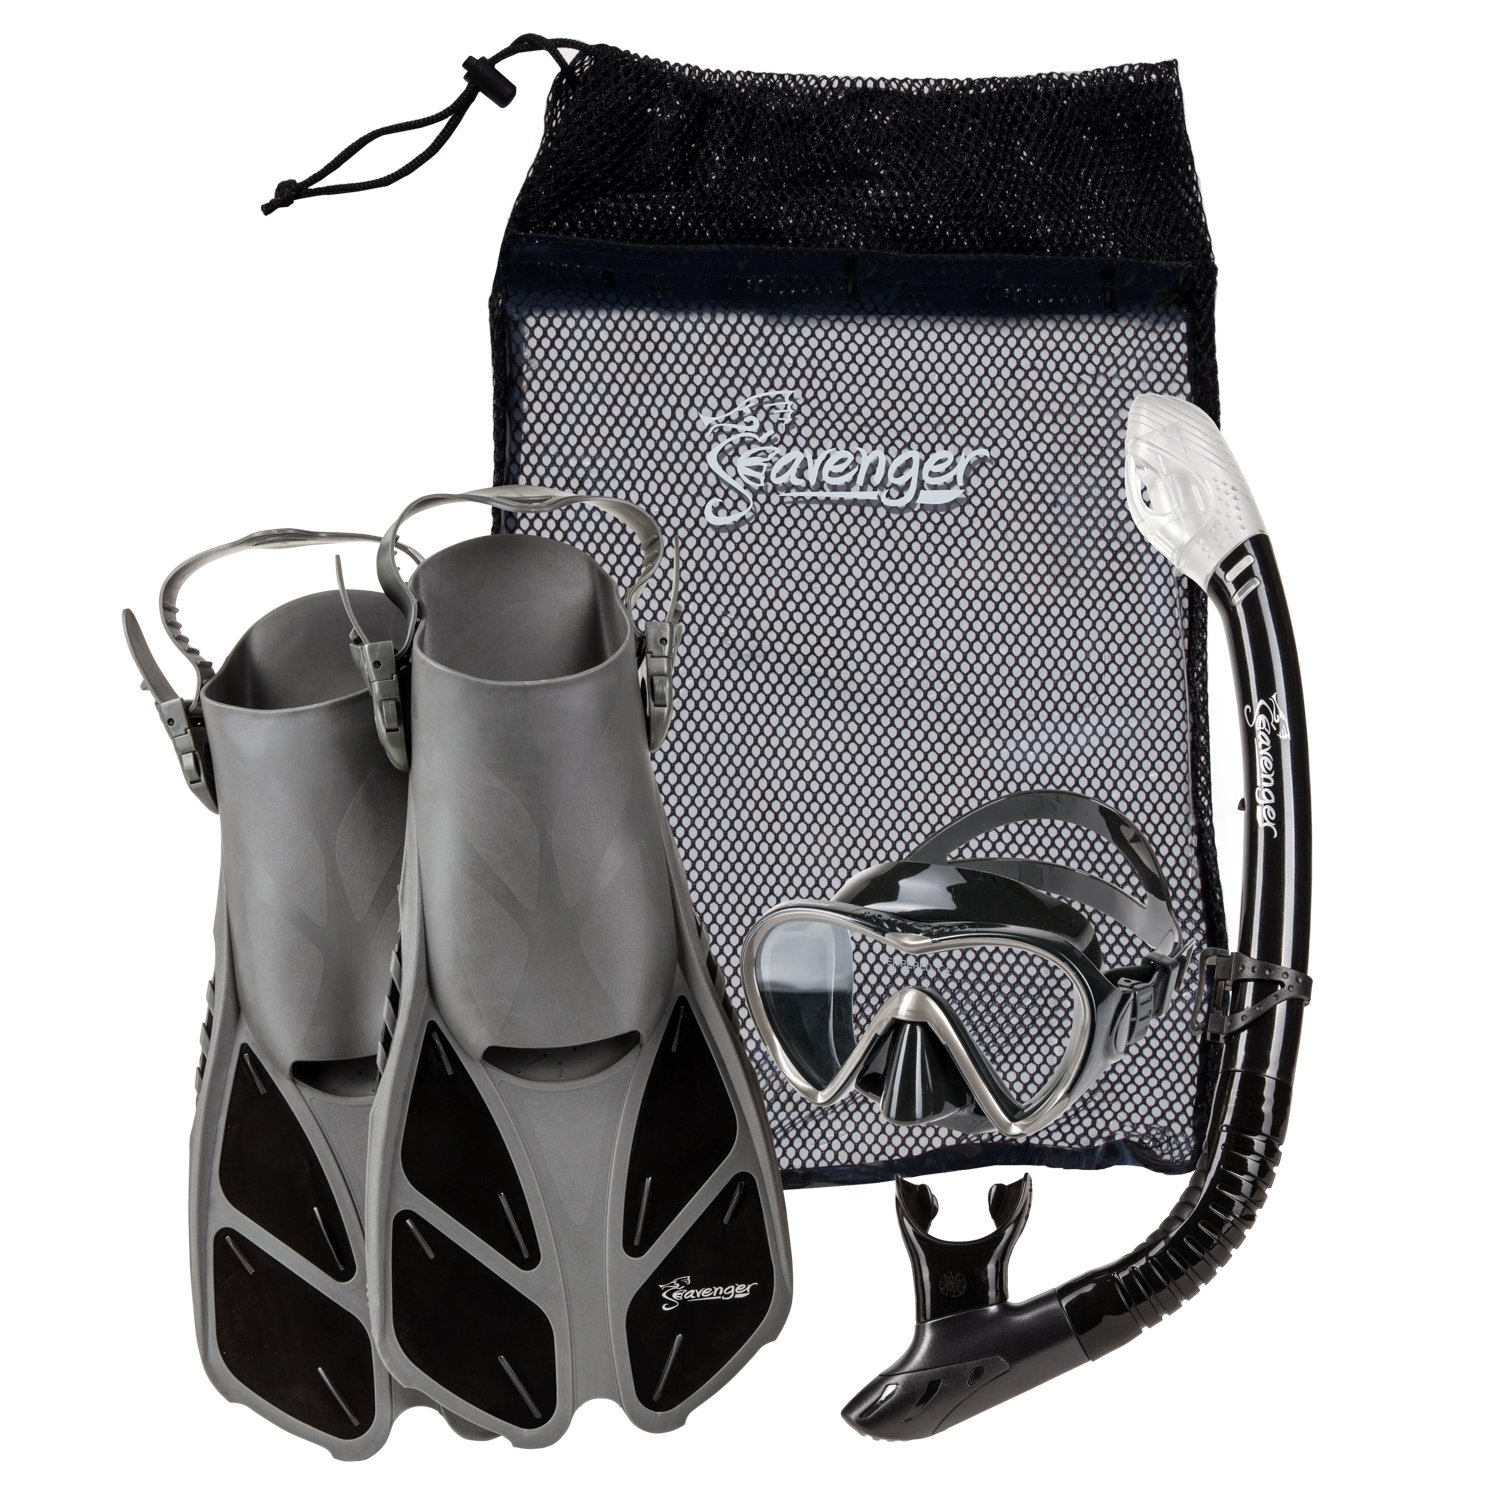 Seavenger Diving Dry Top Snorkel Set with Trek Fin, Single Lens Mask and Gear Bag, XS/XXS - Size 1 to 4 or Children 10-13, Gray/Black Silicon